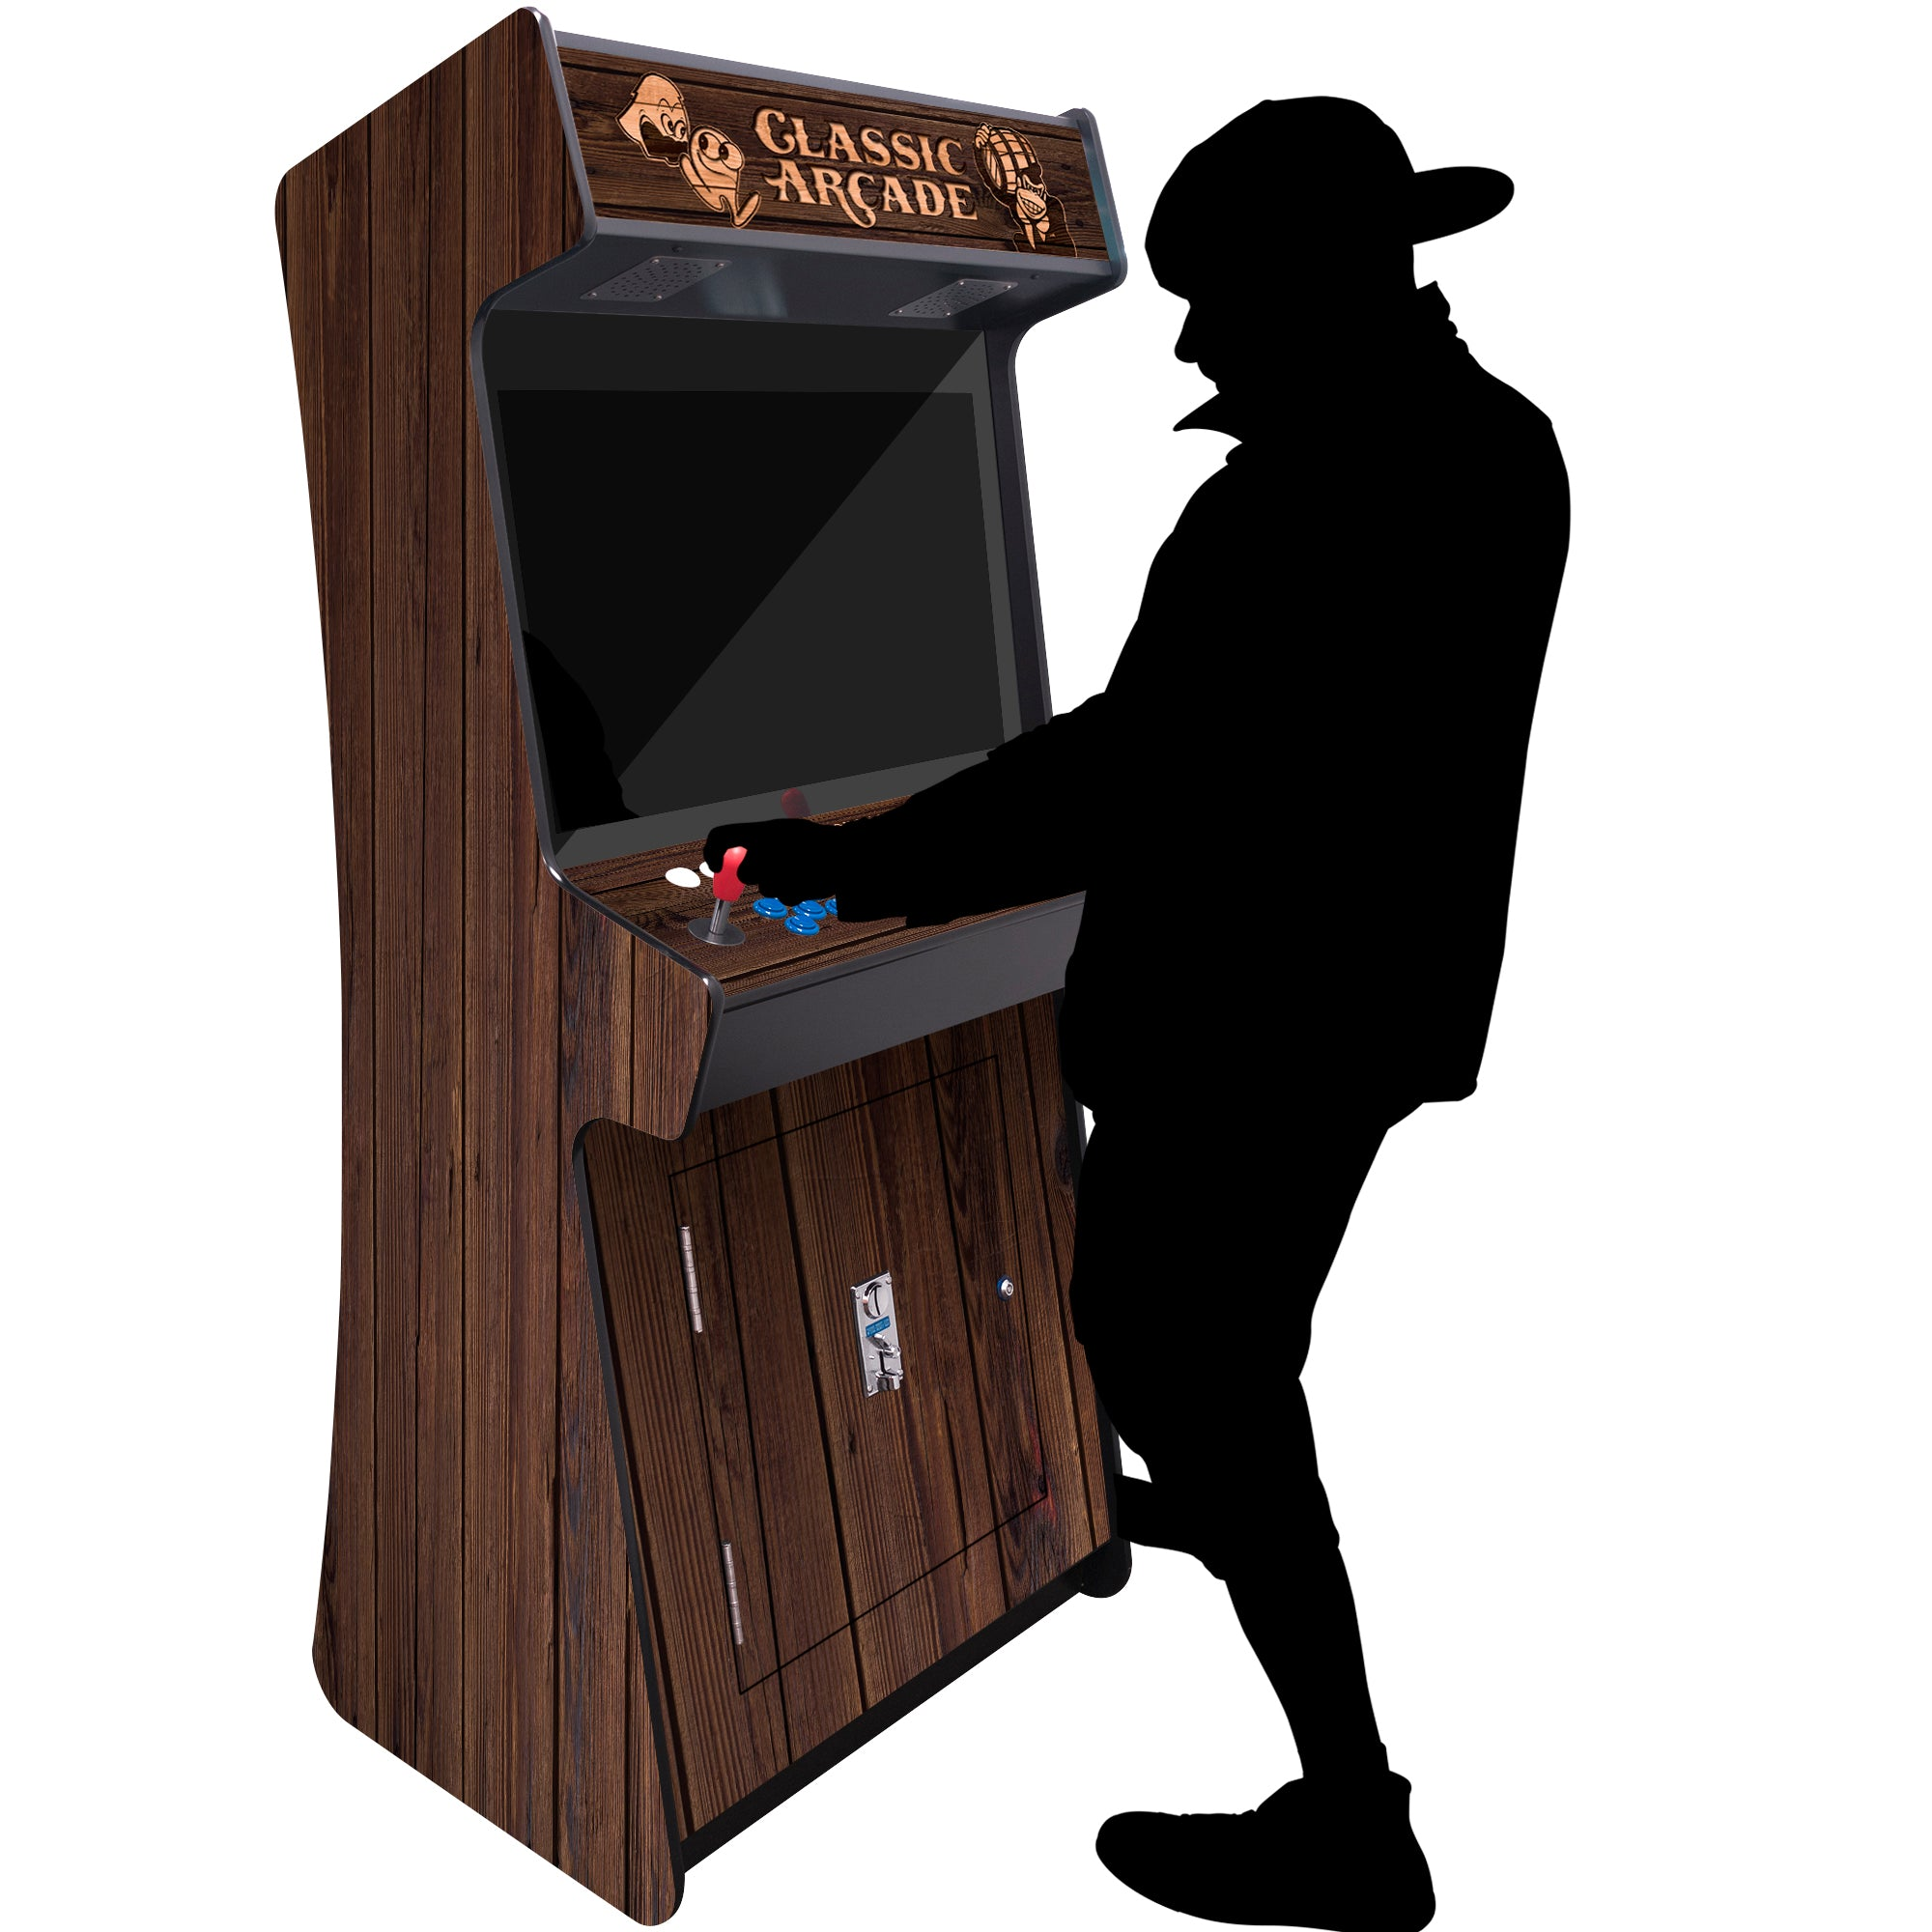 "2 Player Stand Up SLIM | 3500-4500 Games | WOODGRAIN | 32"" Classic Video Game Arcade 